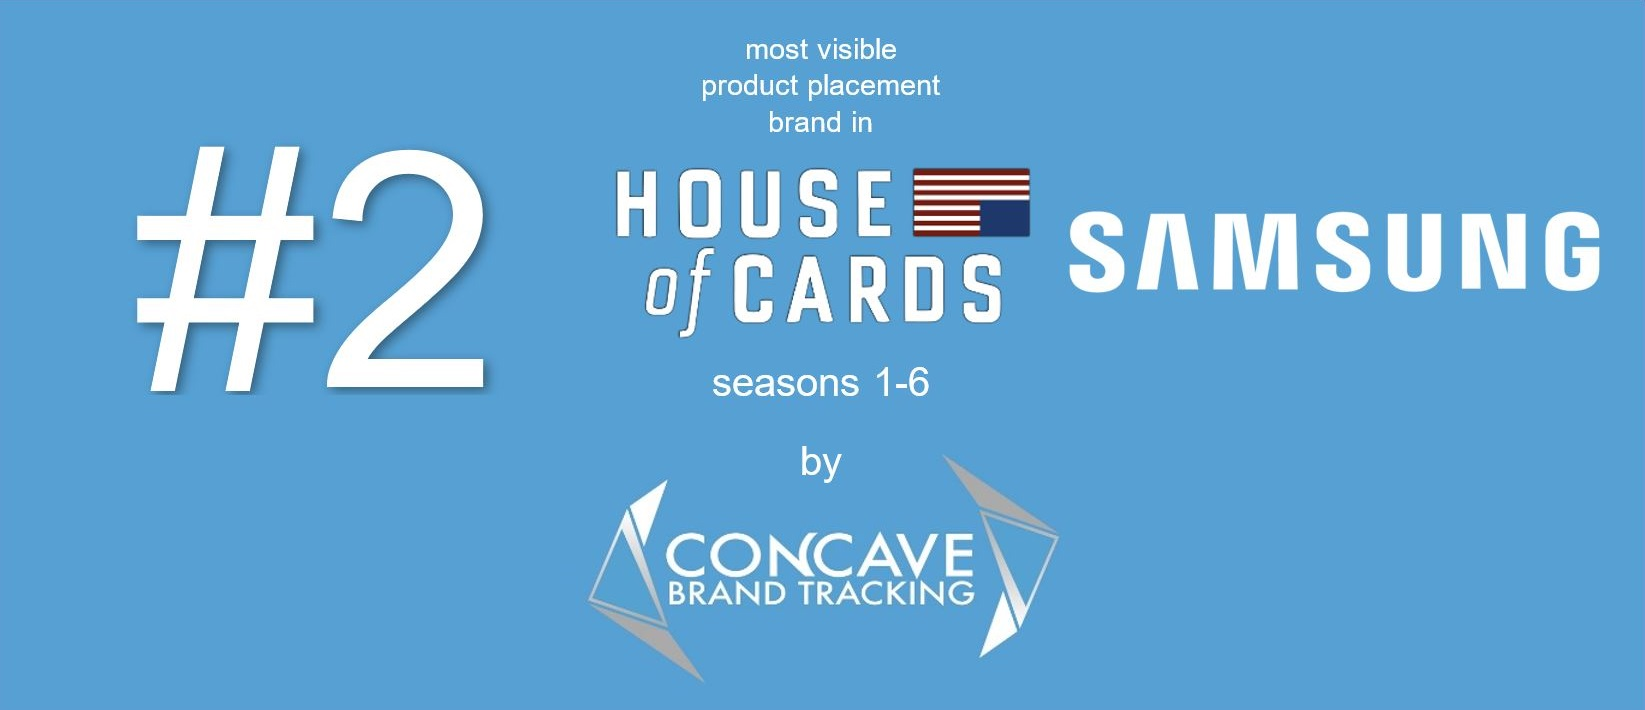 Samsung samsung 2 #2 10 most visible product placement brand in HOUSE OF CARDS Concave Brand Tracking